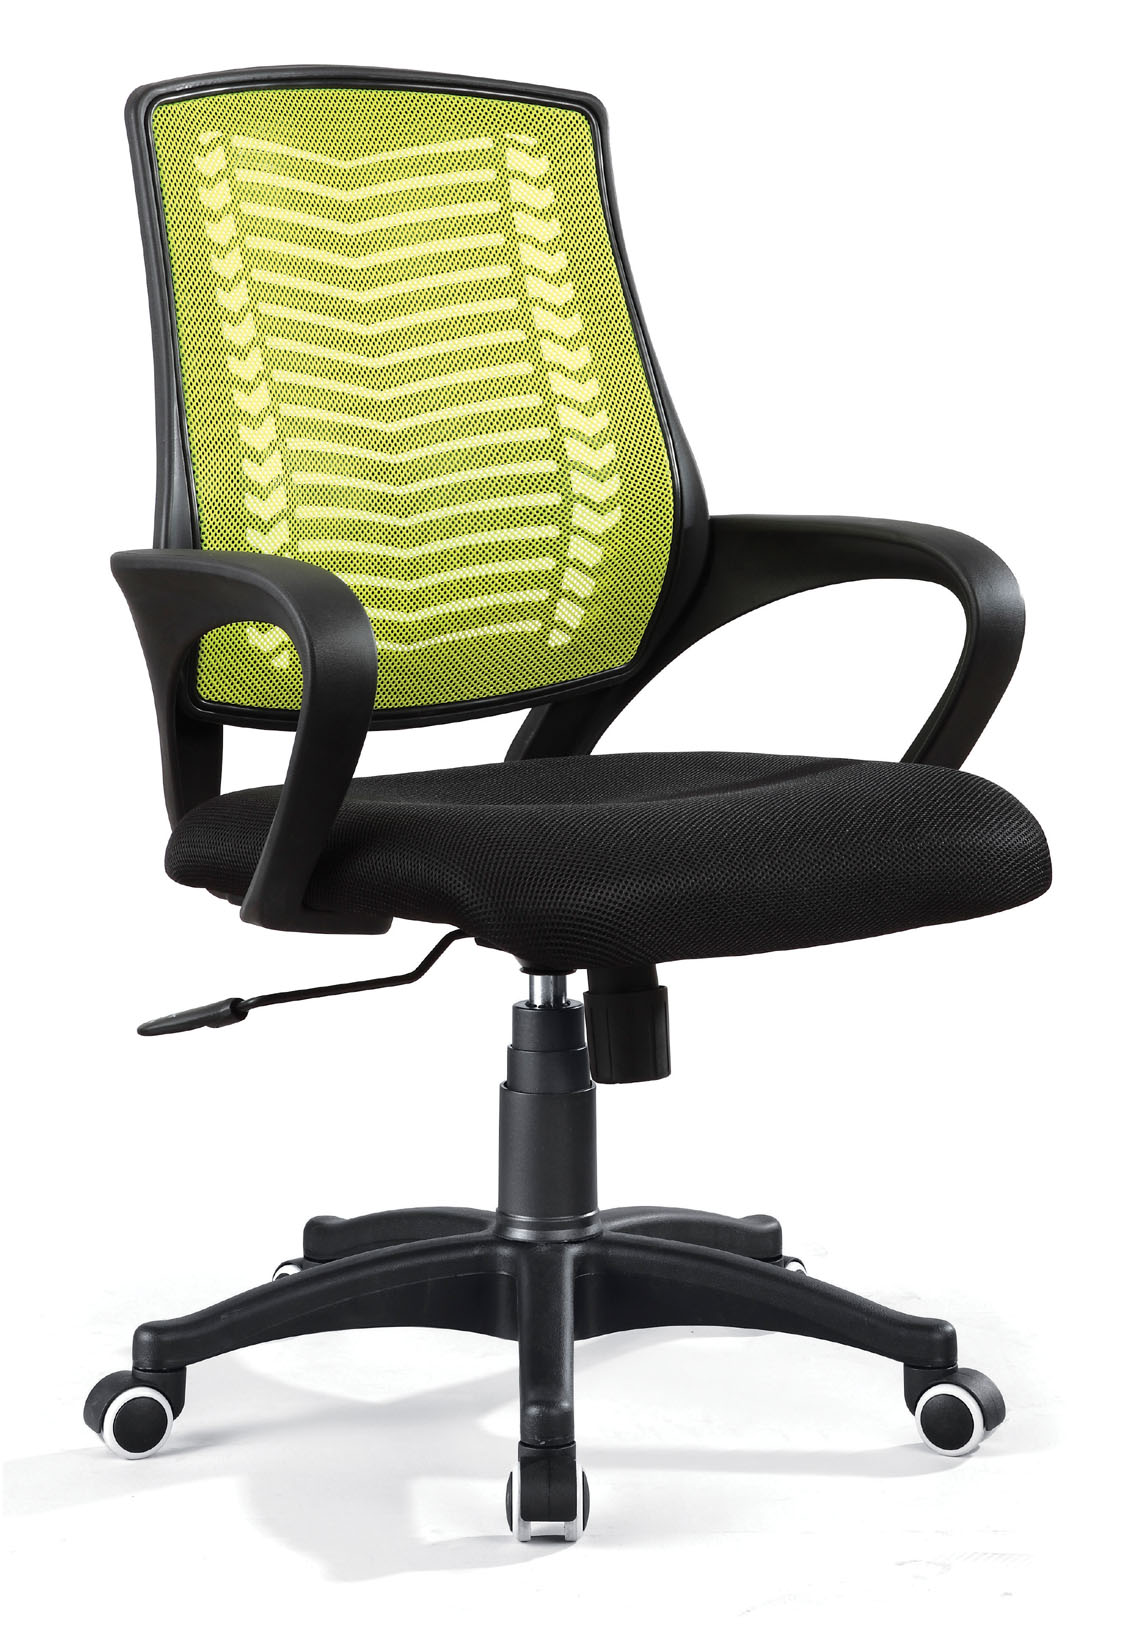 ZHSMC-08 Swivel Office Chair With Colored Painted Legs and Mesh Backrest